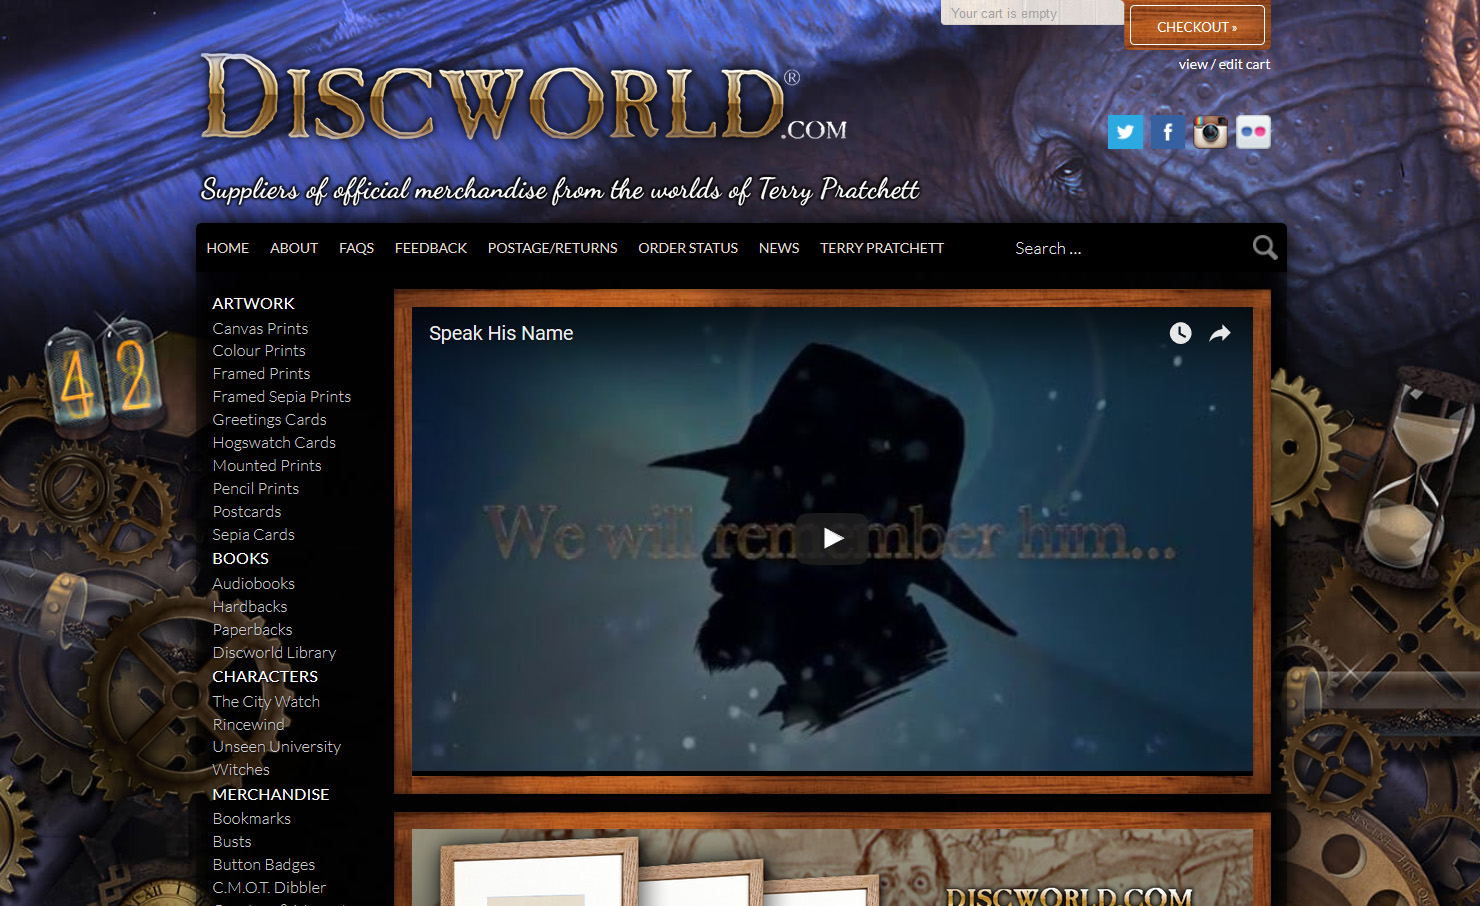 discworld com u2013 merchandise clothing artwork books u0026 collectables